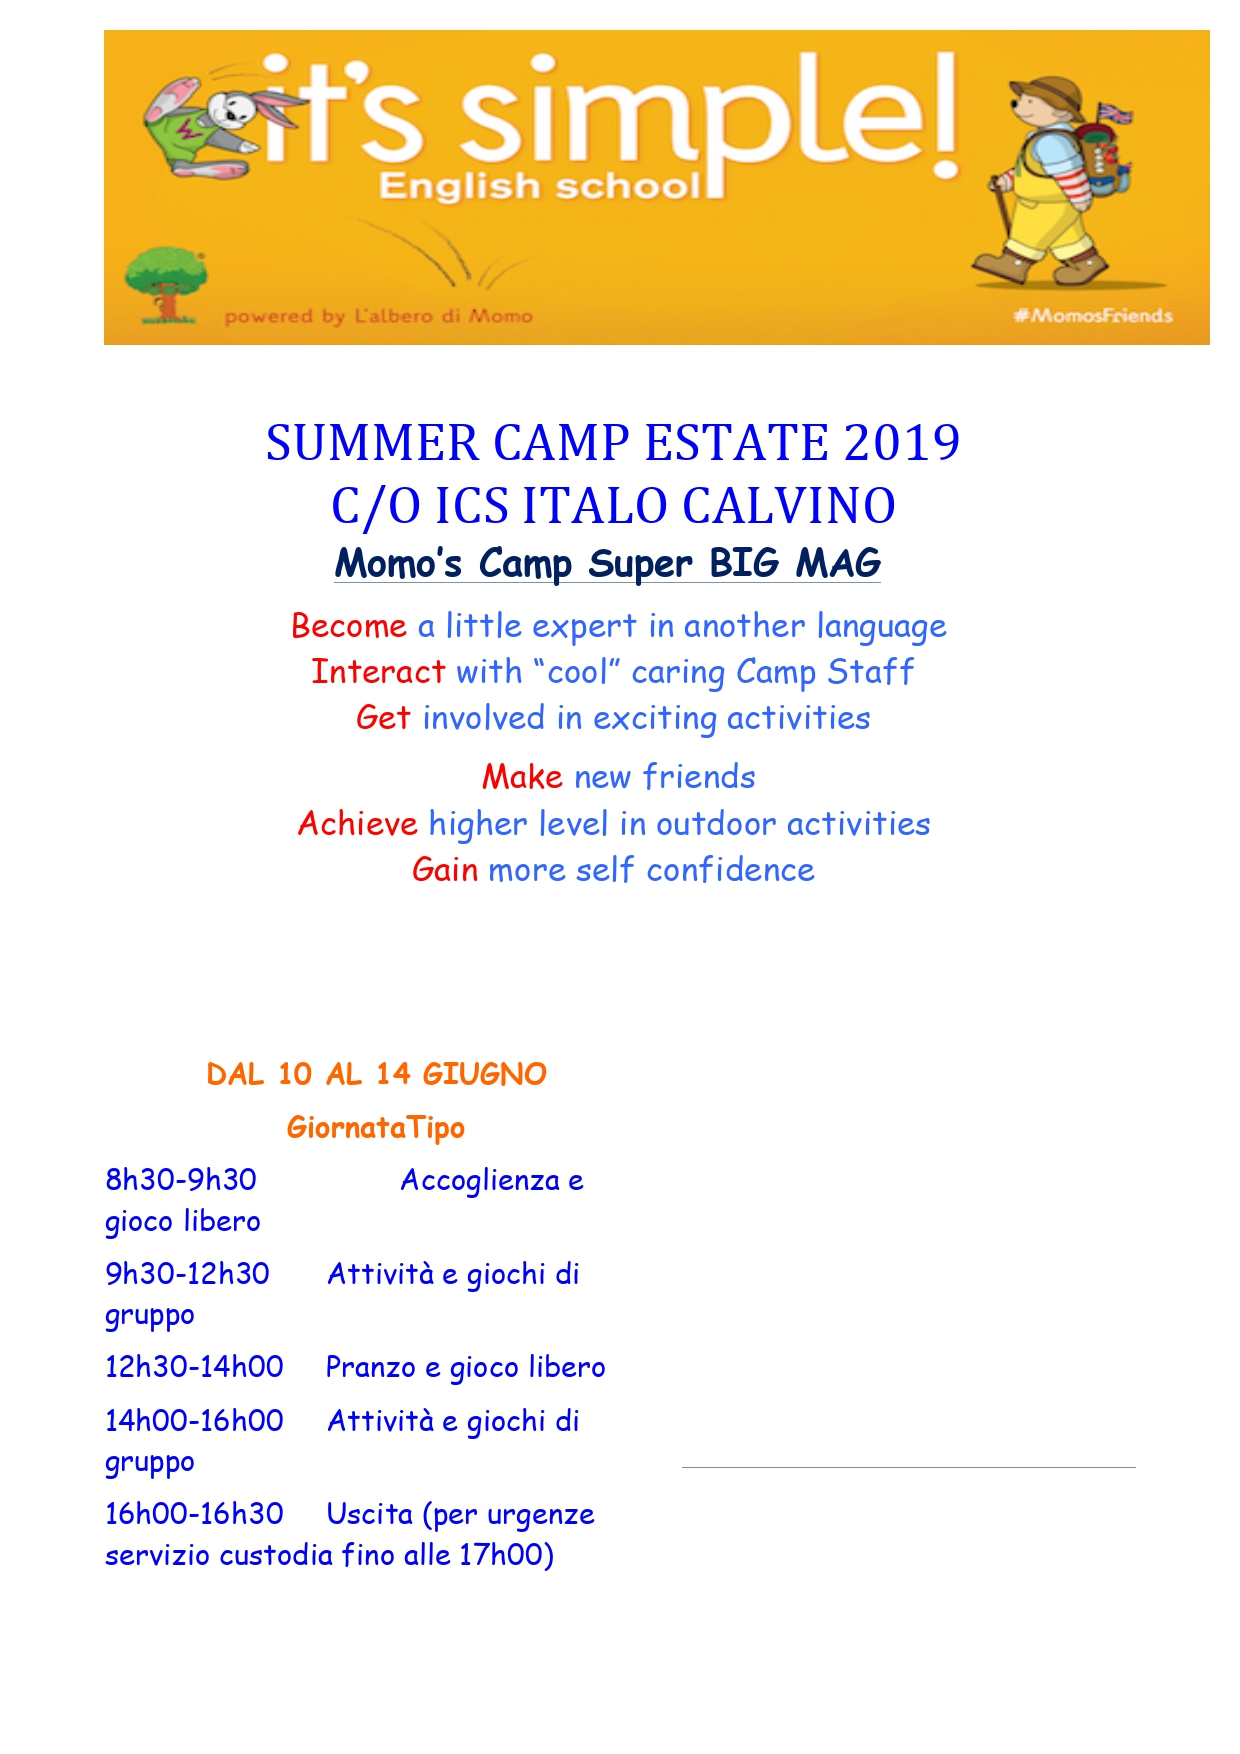 Its Simple SUMMER CAMP ESTATE 2019 page 0001